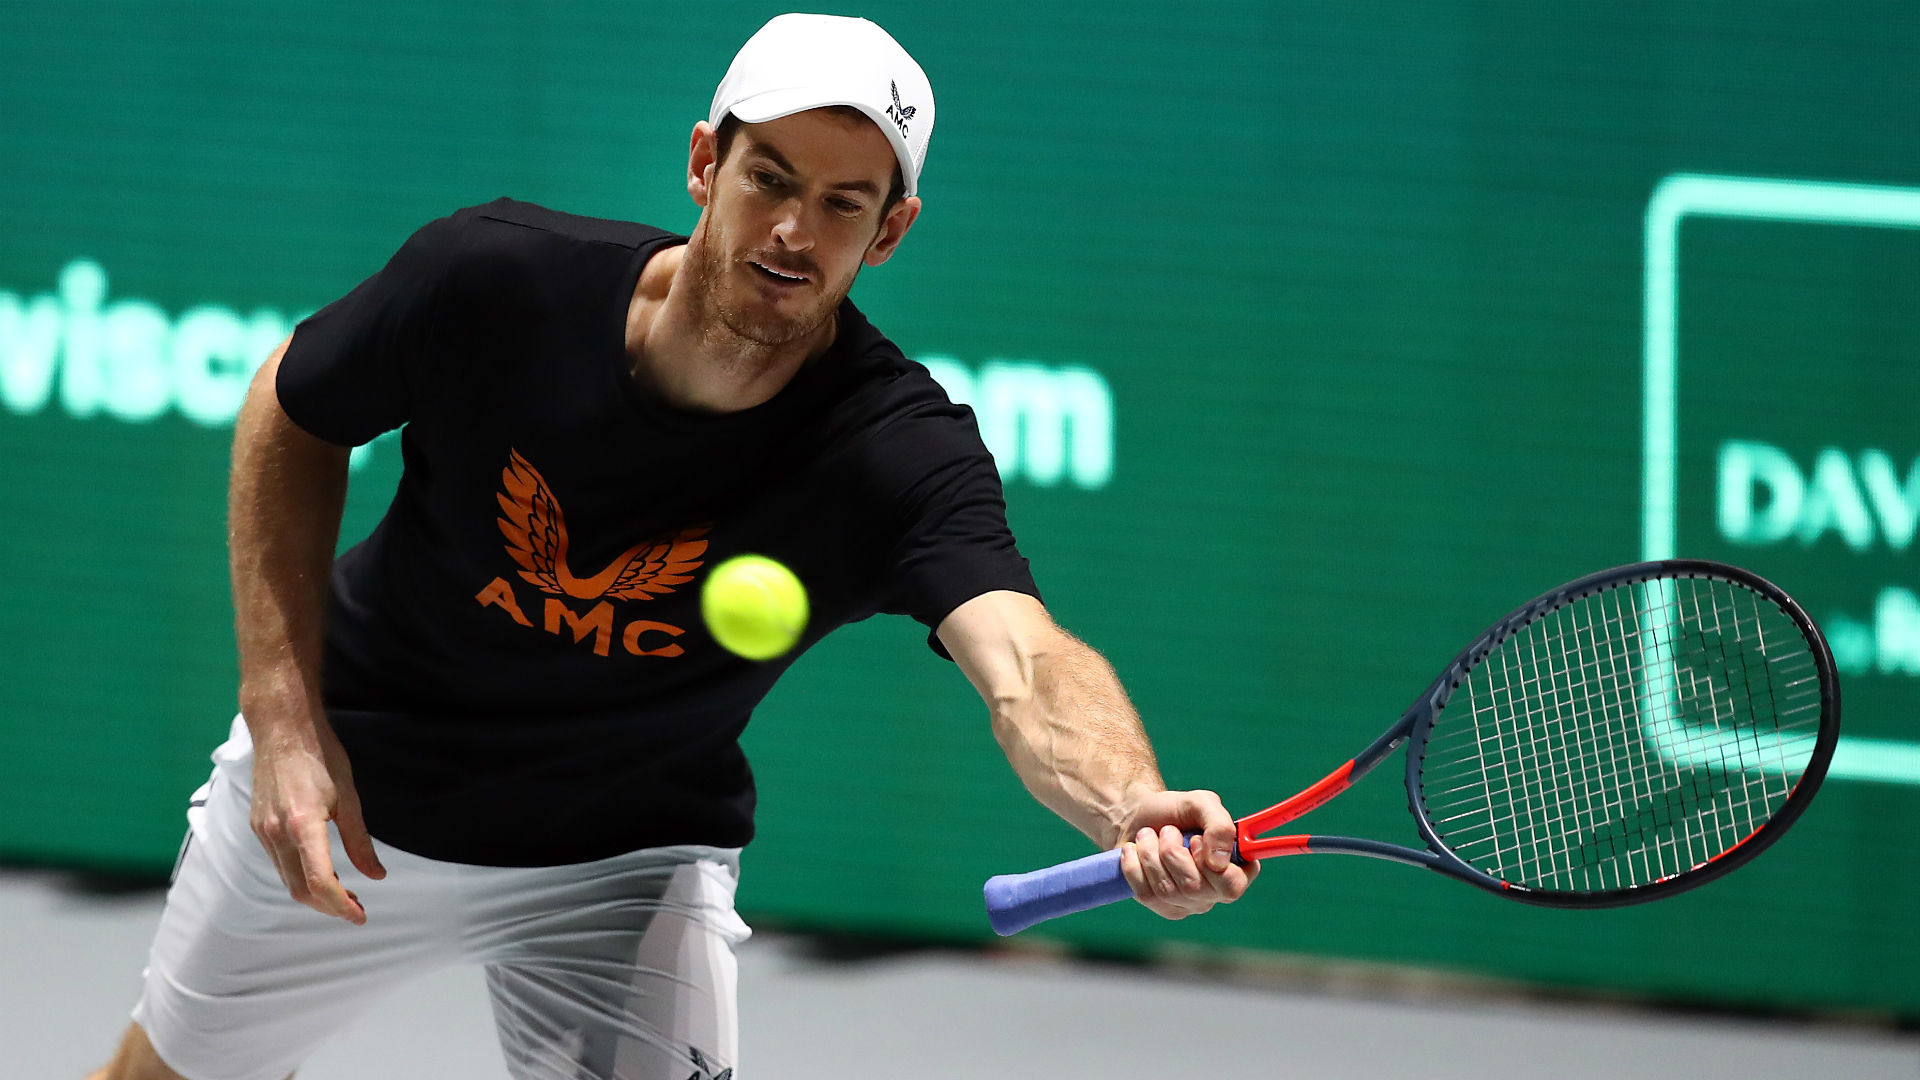 Coronavirus: Murray lays down '100 volley challenge' to Federer and tennis community